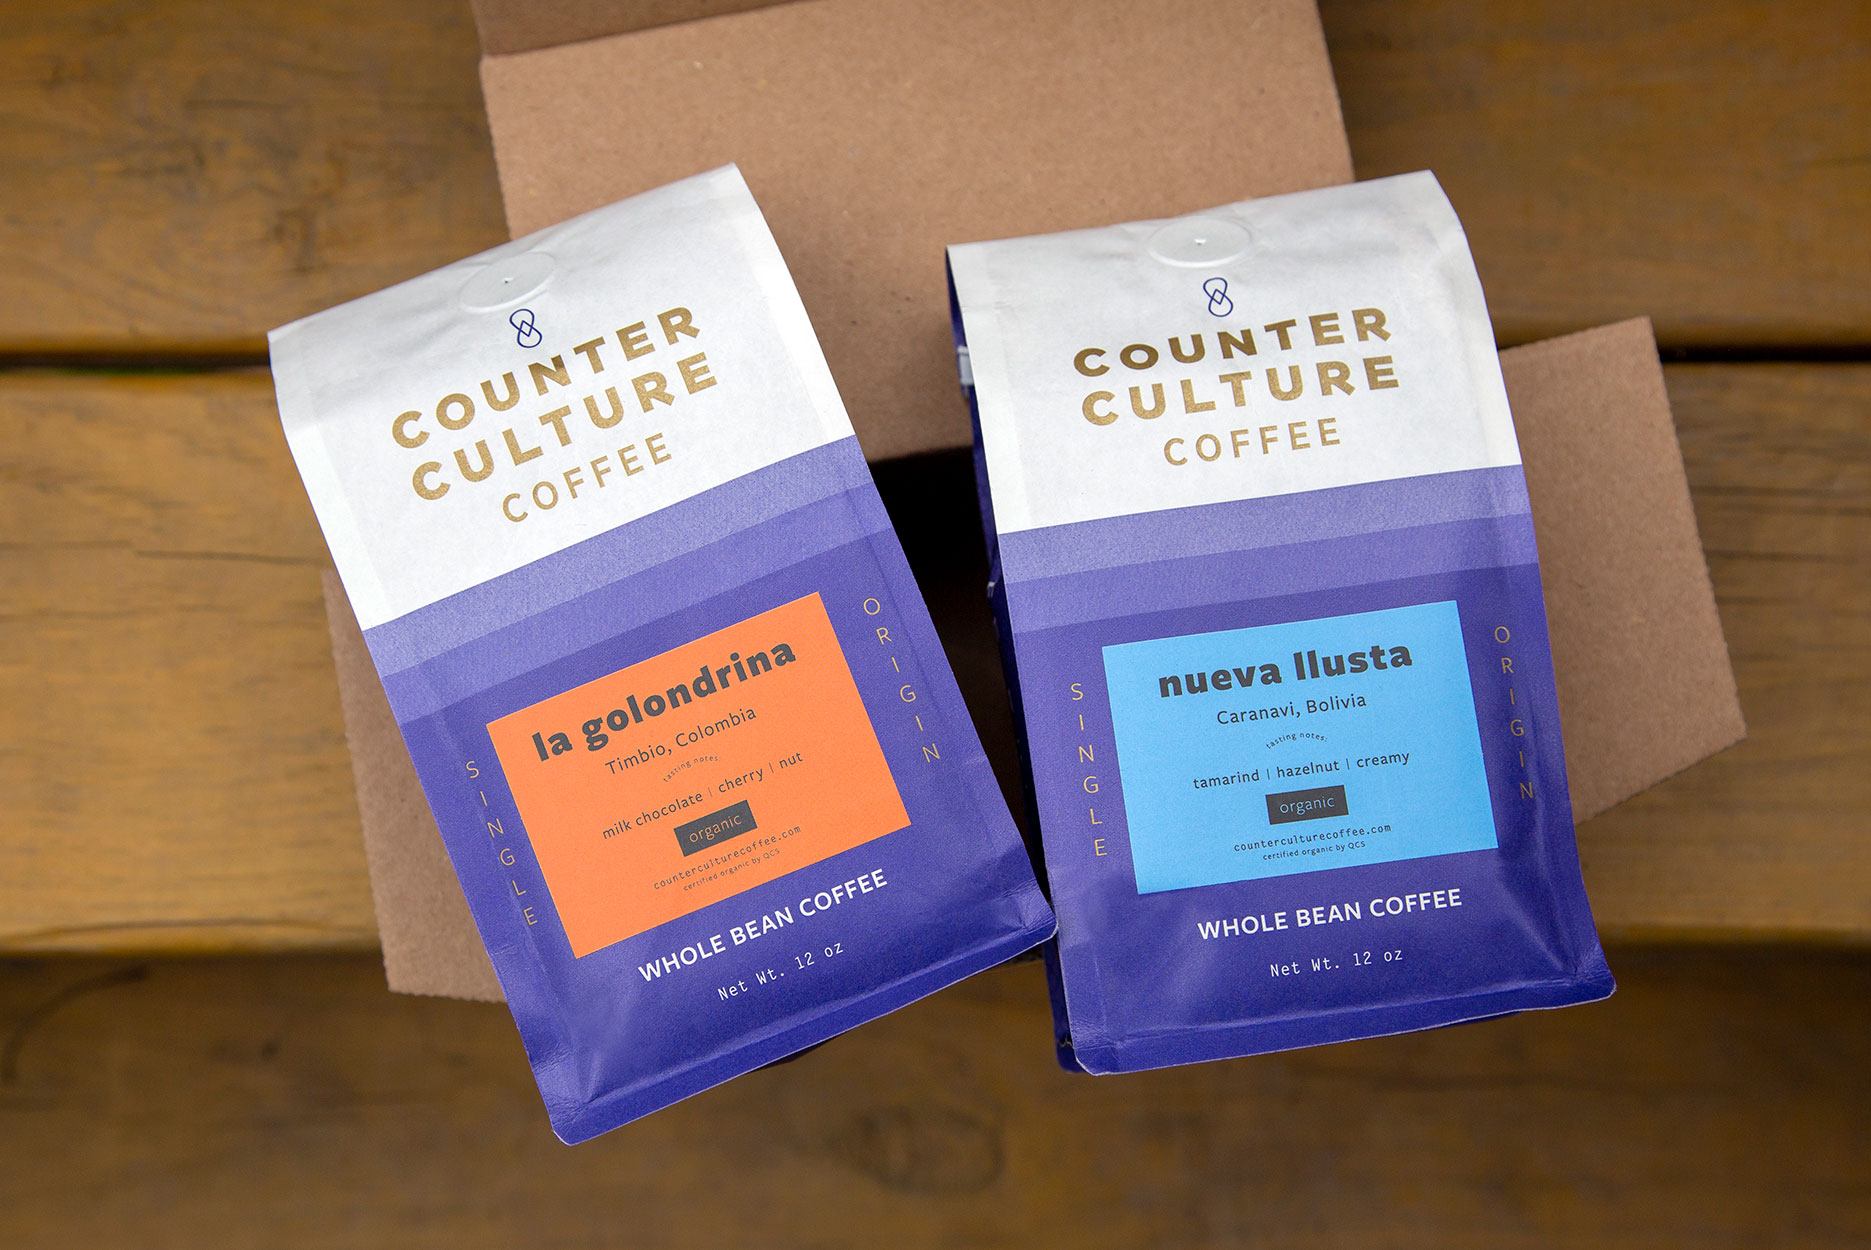 NPR Coffee Club beans from Counter Culture